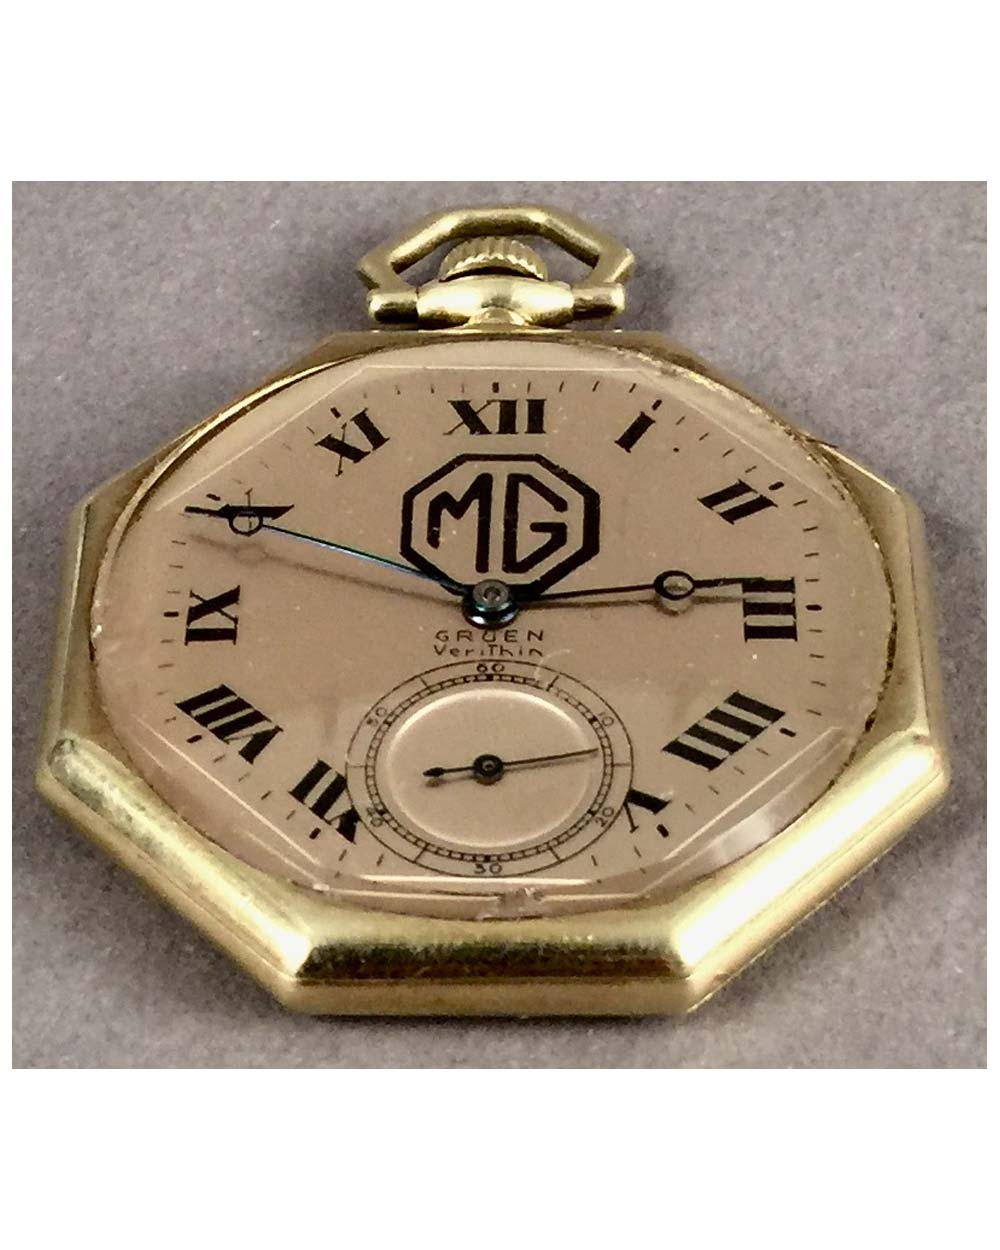 "MG pocket watch By Gruen<br><span style=""color: #ff0000;"">$765 -25% = $574</span>"